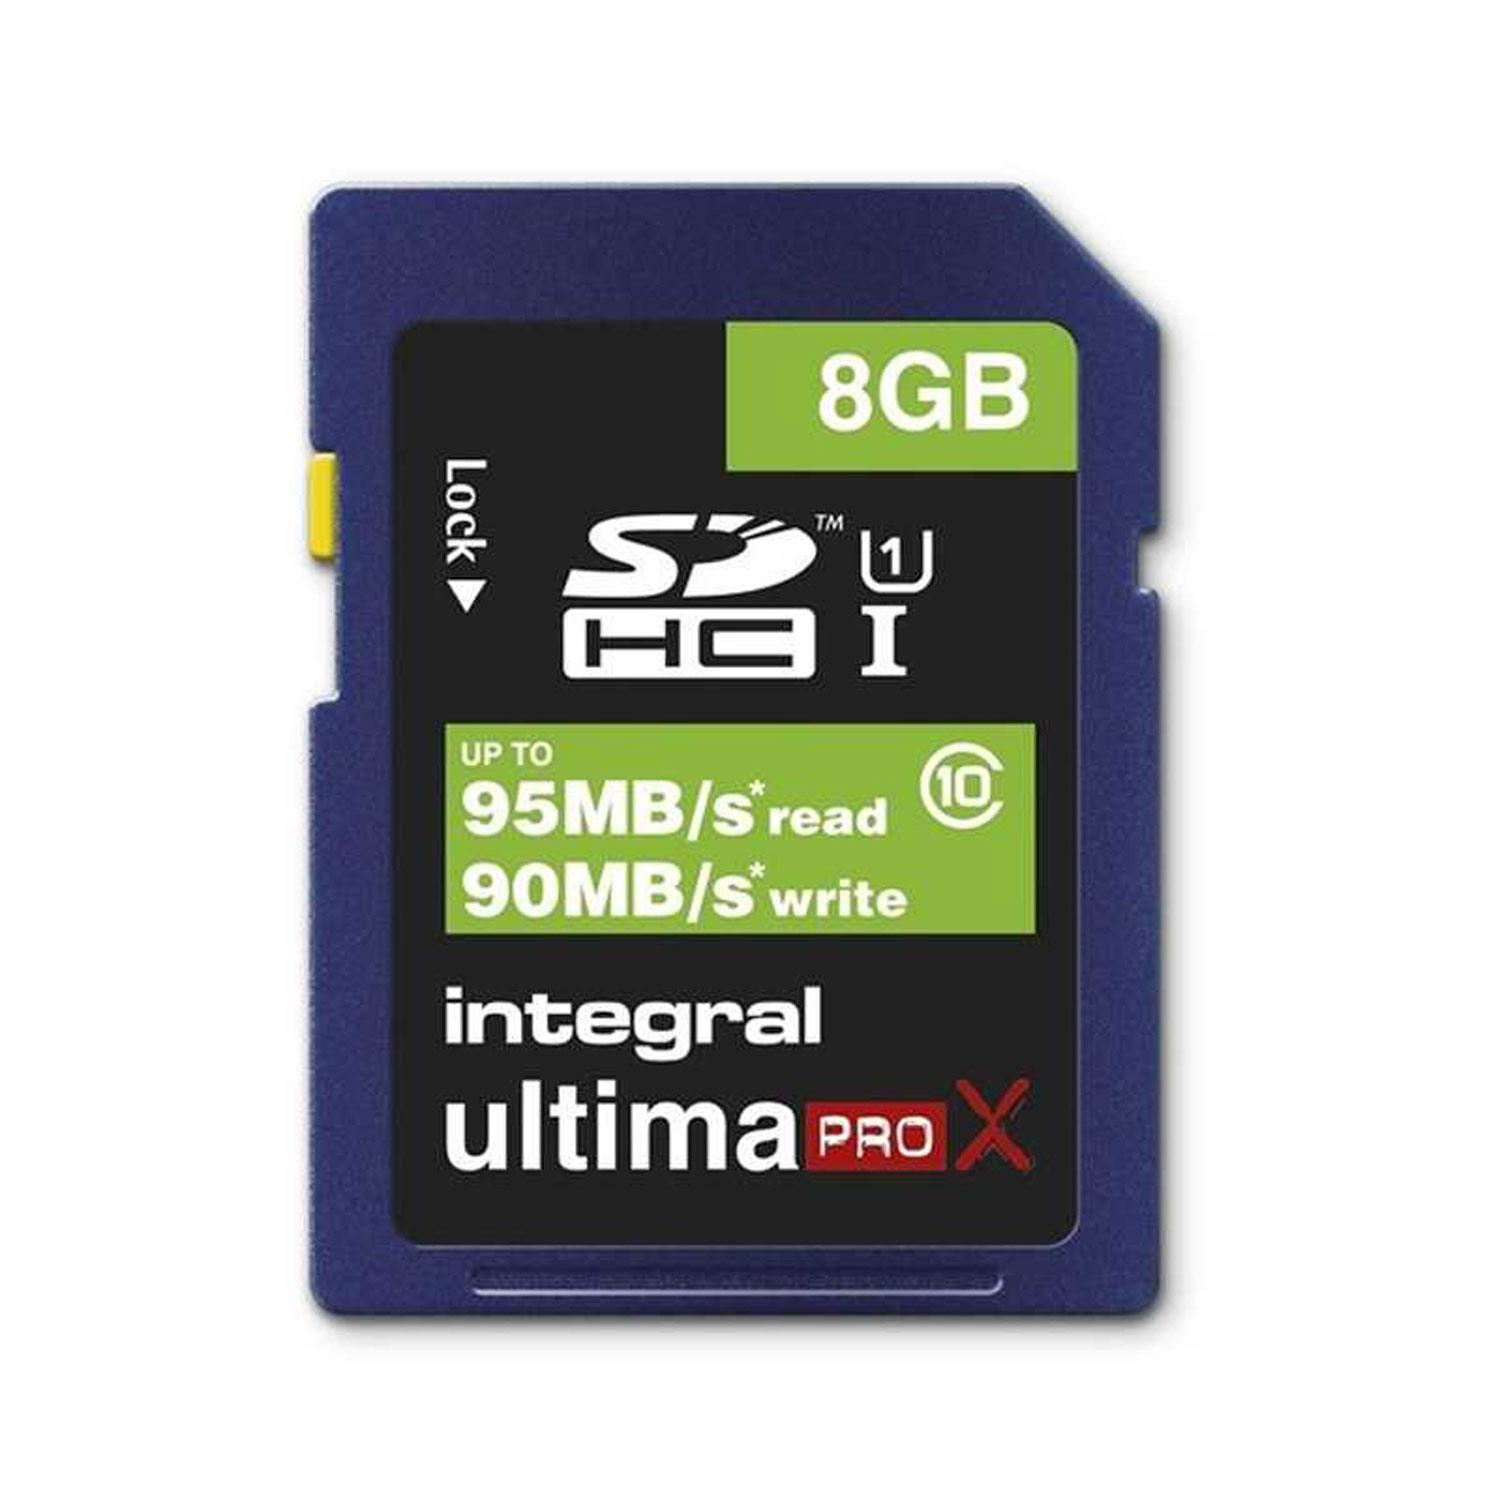 Integral 8GB Ultima ProX SD Card (SDHC) - 95MB/s